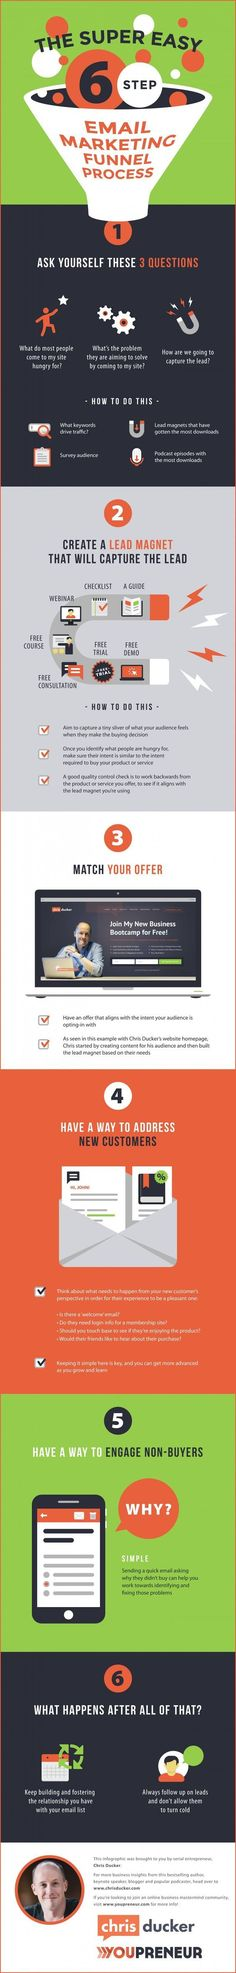 The Super Easy 6-Step Email Marketing Funnel Process [Infographic] #emailmarketing #marketing